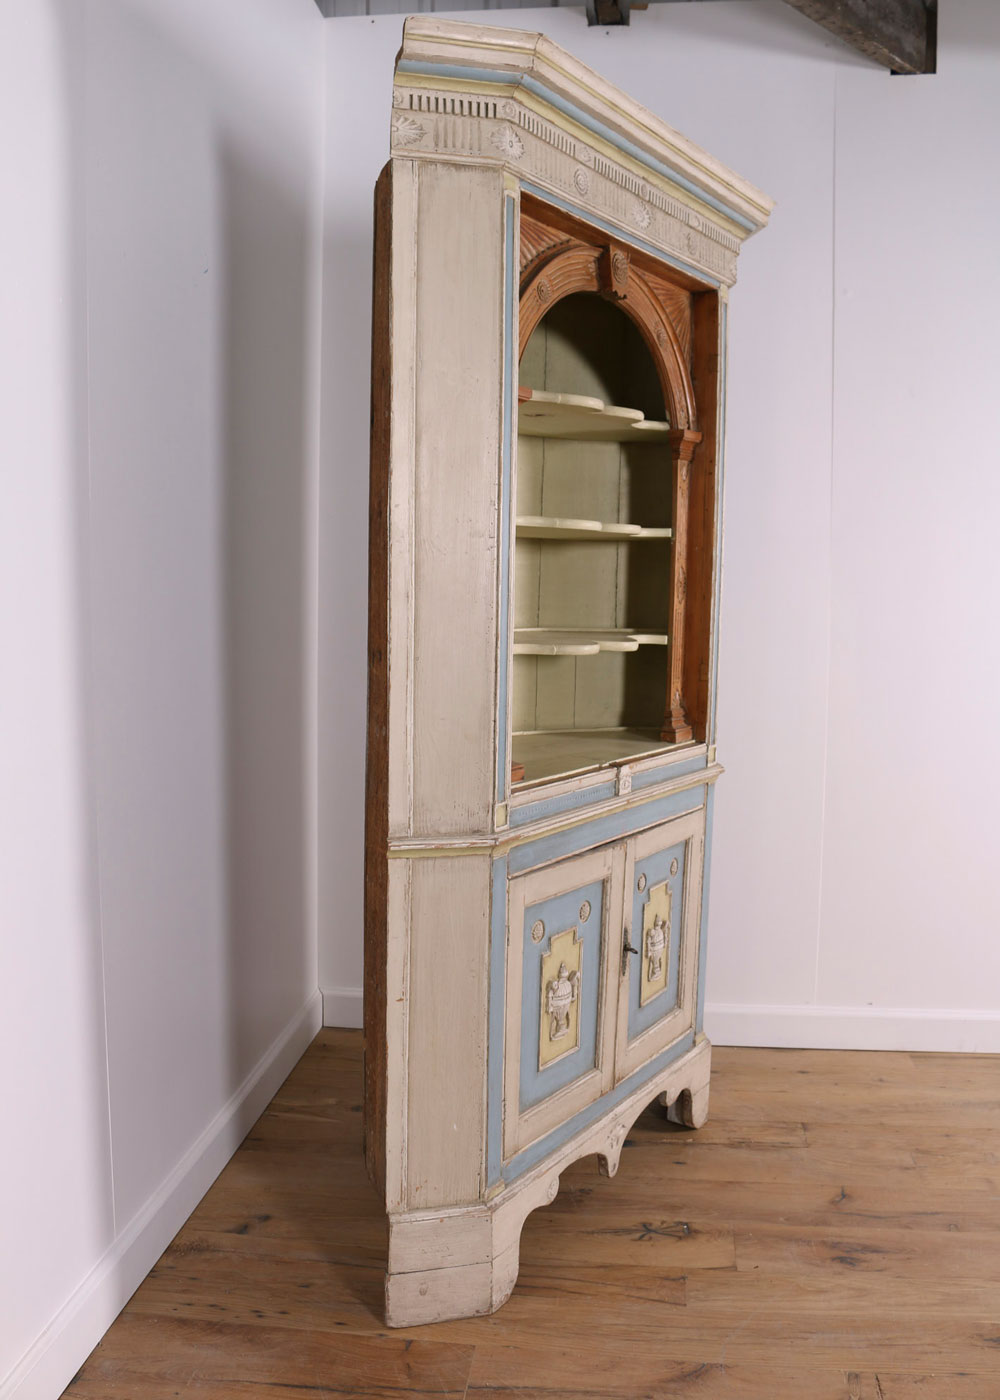 Side view of tall corner cabinet